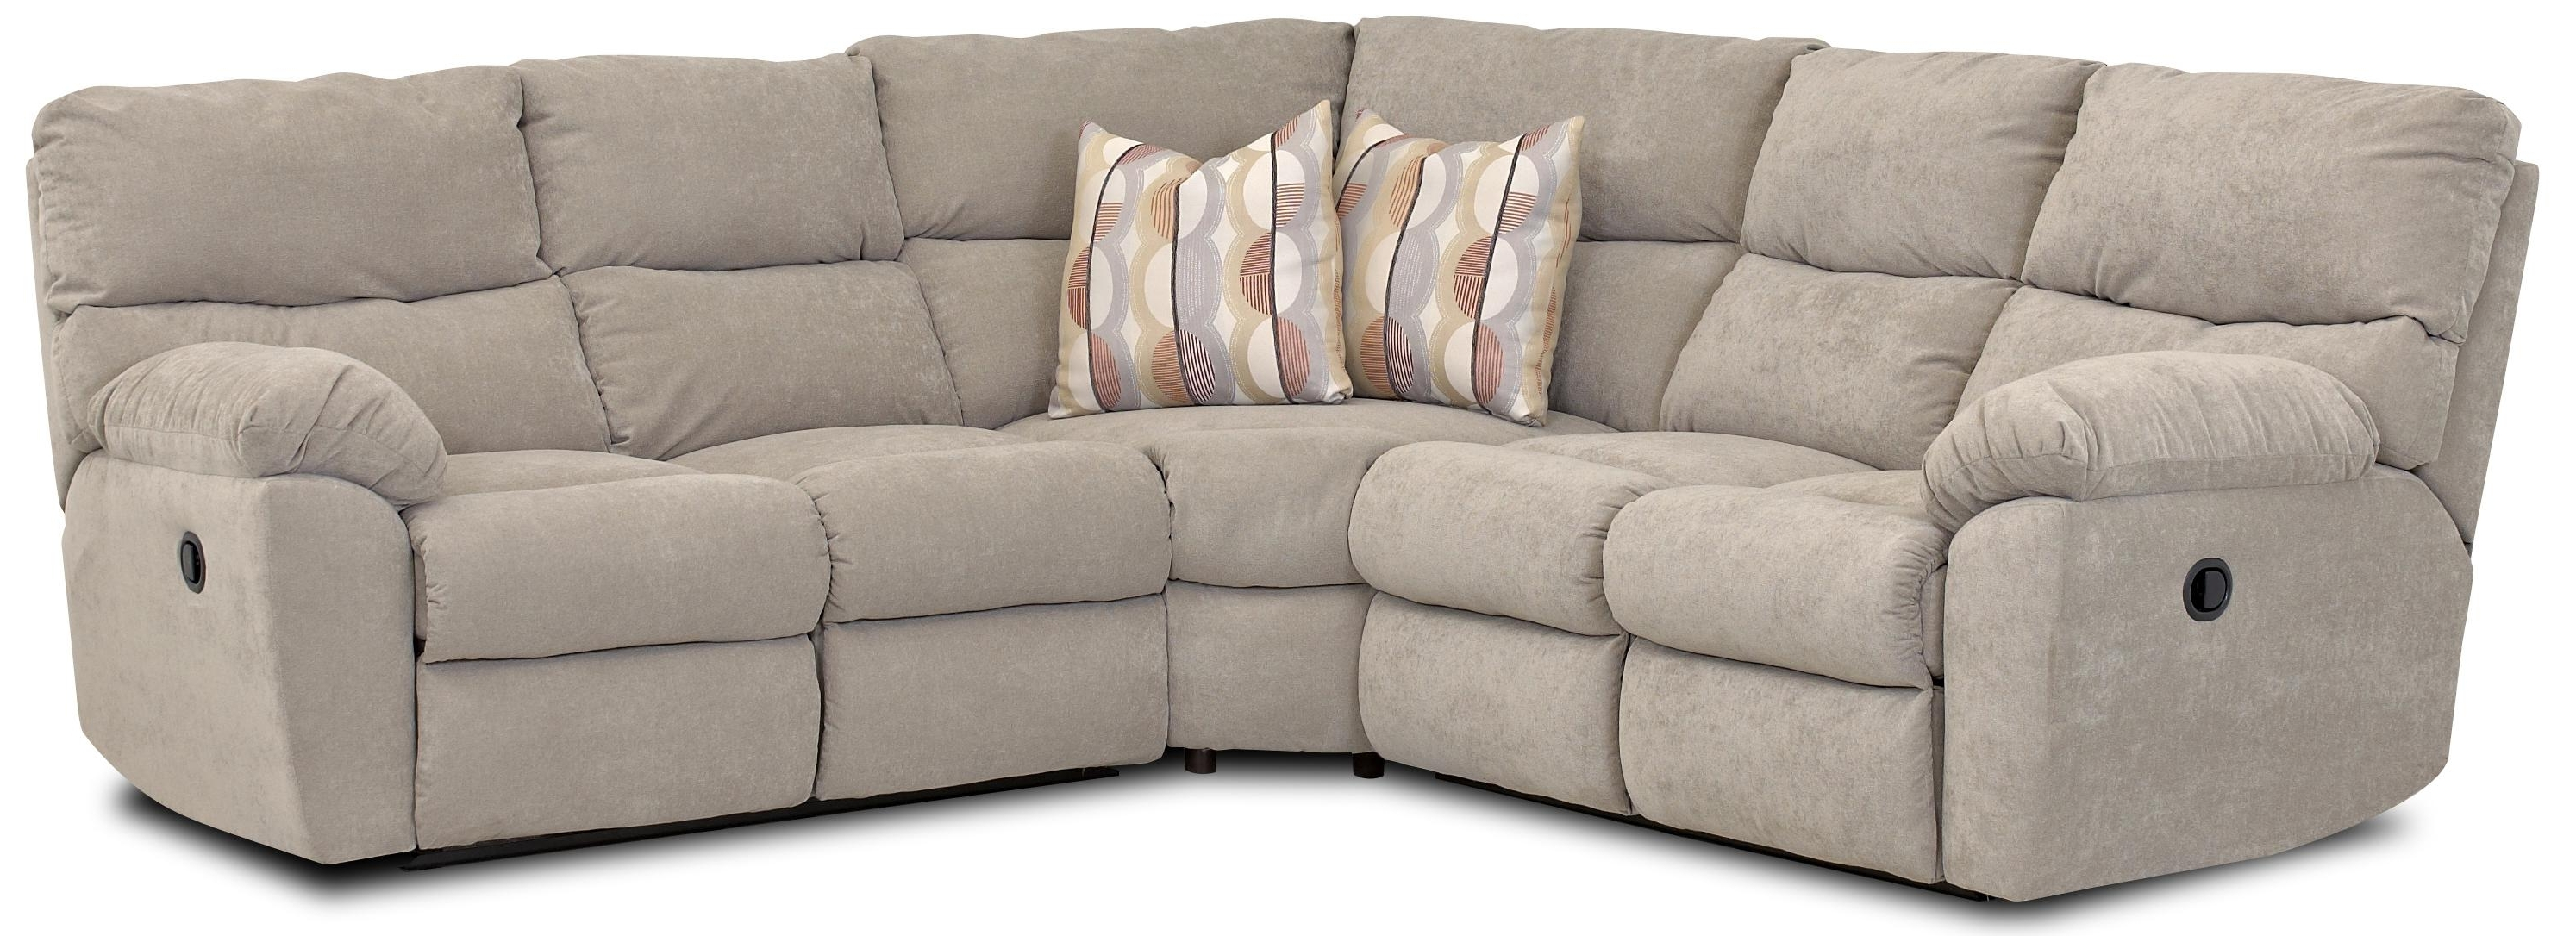 Latest Johnny Janosik Sectional Sofas In Klaussner Odessa Casual Power Reclining Sectional With Accent (View 3 of 15)